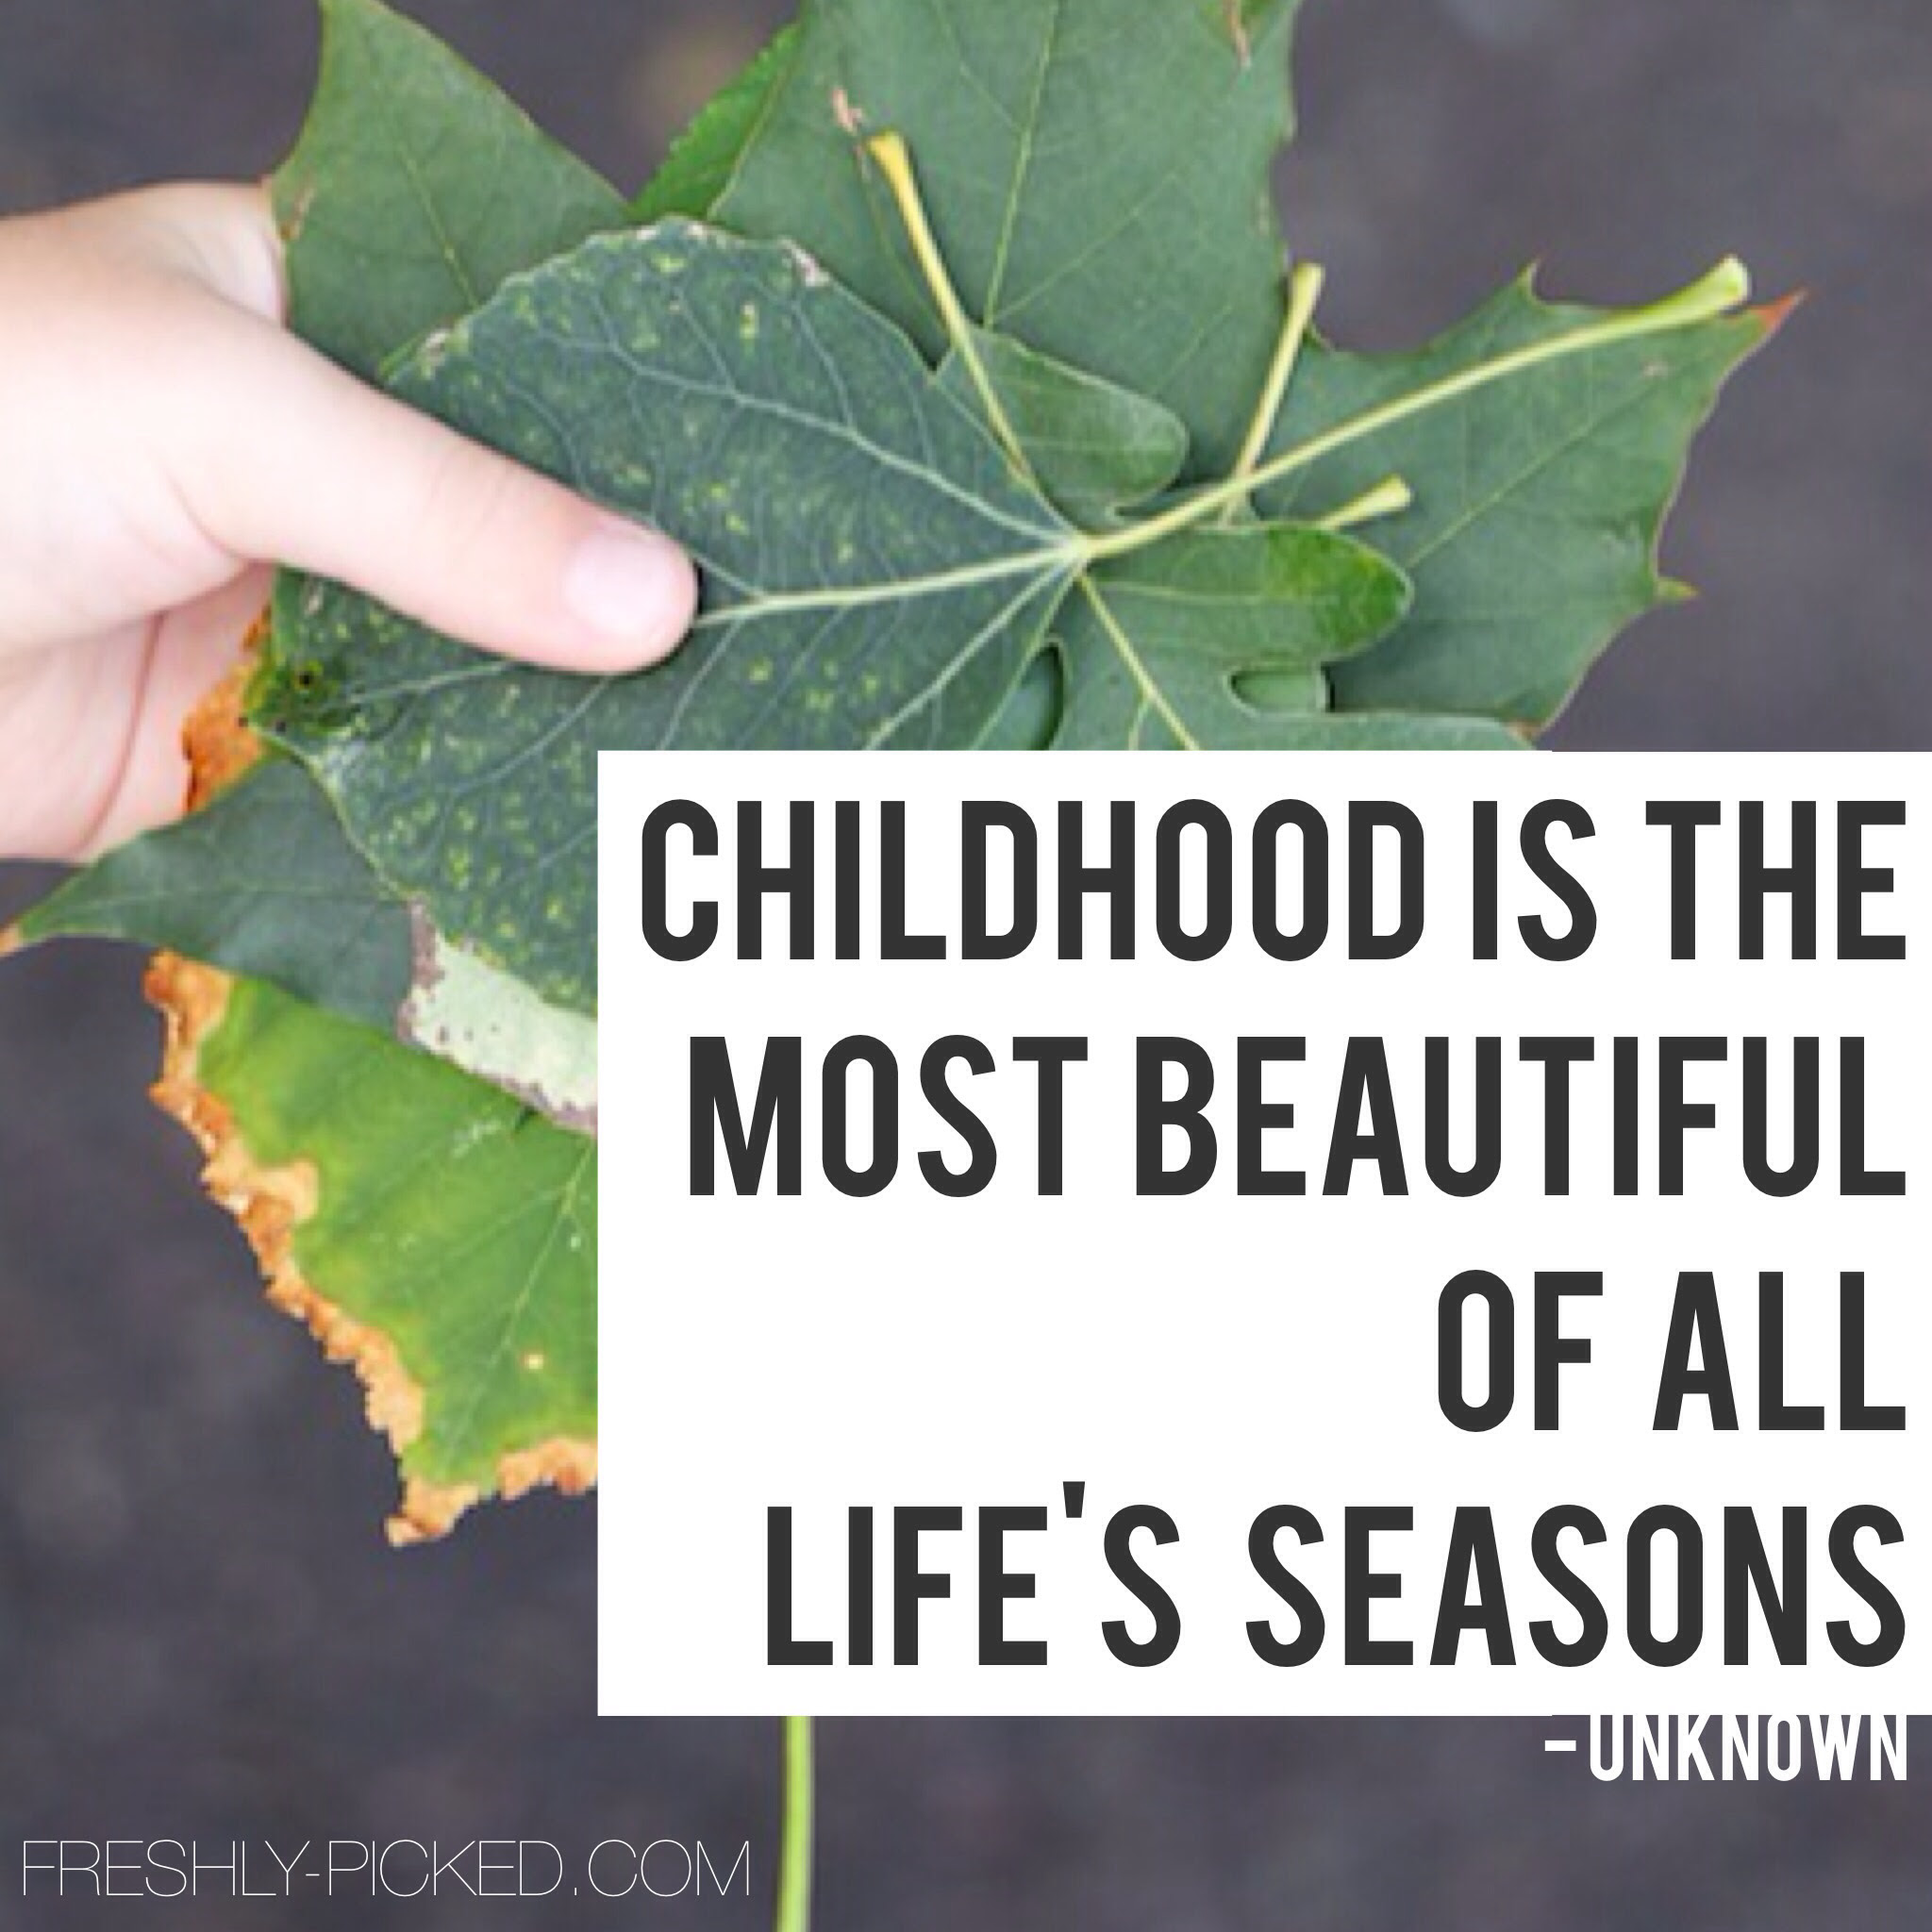 Quotes About Childhood Photo 24 Quotes